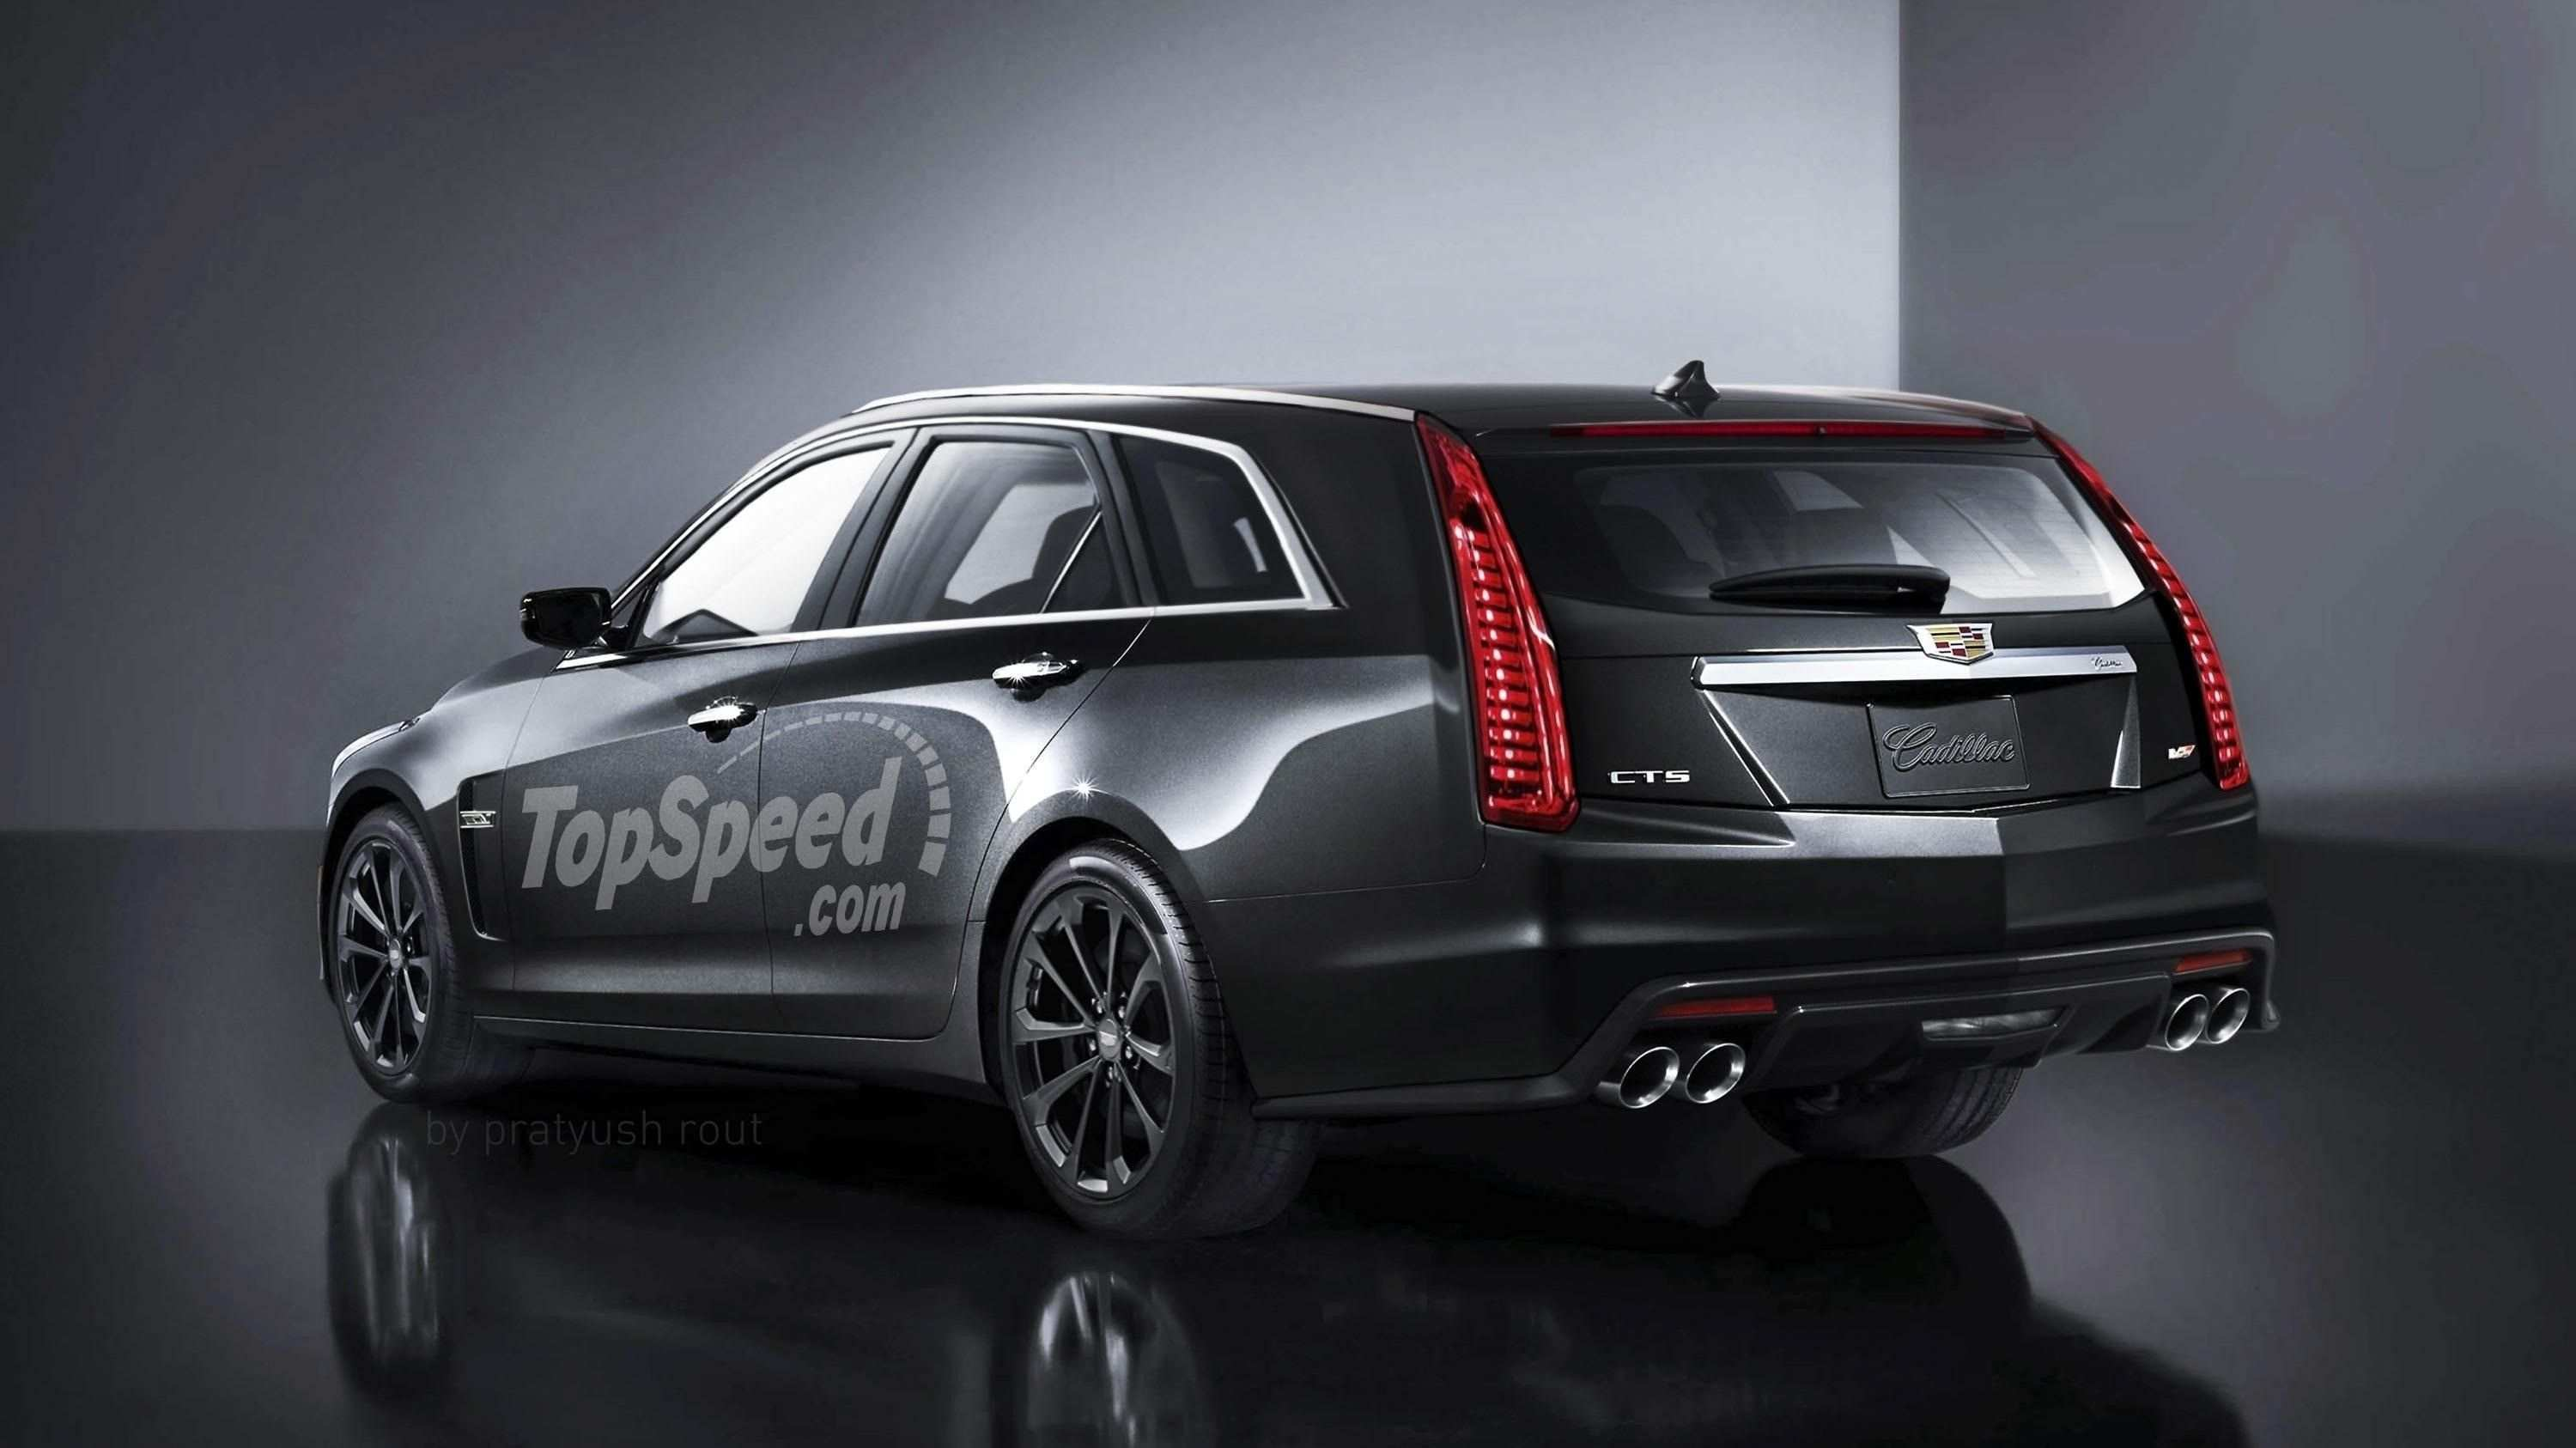 61 New New 2019 Cadillac Cts V Hp First Drive Redesign and Concept with New 2019 Cadillac Cts V Hp First Drive